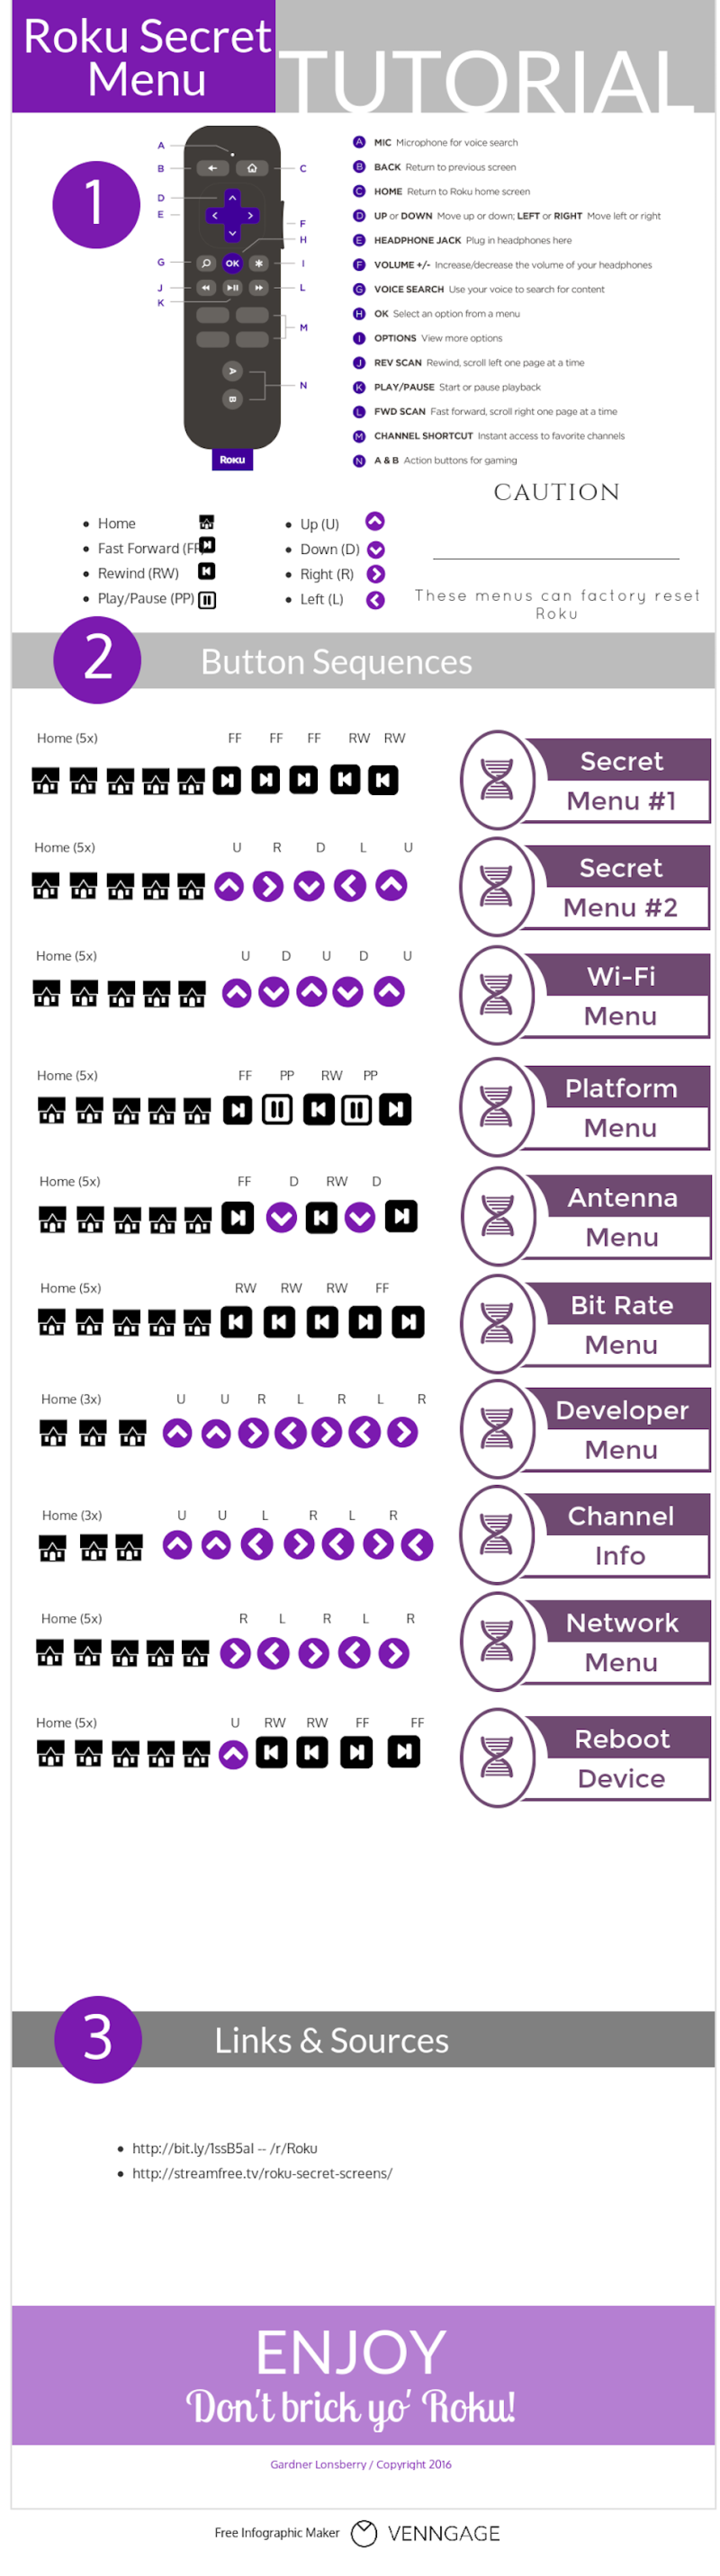 All the Roku Secret Commands and Menus In One Graphic